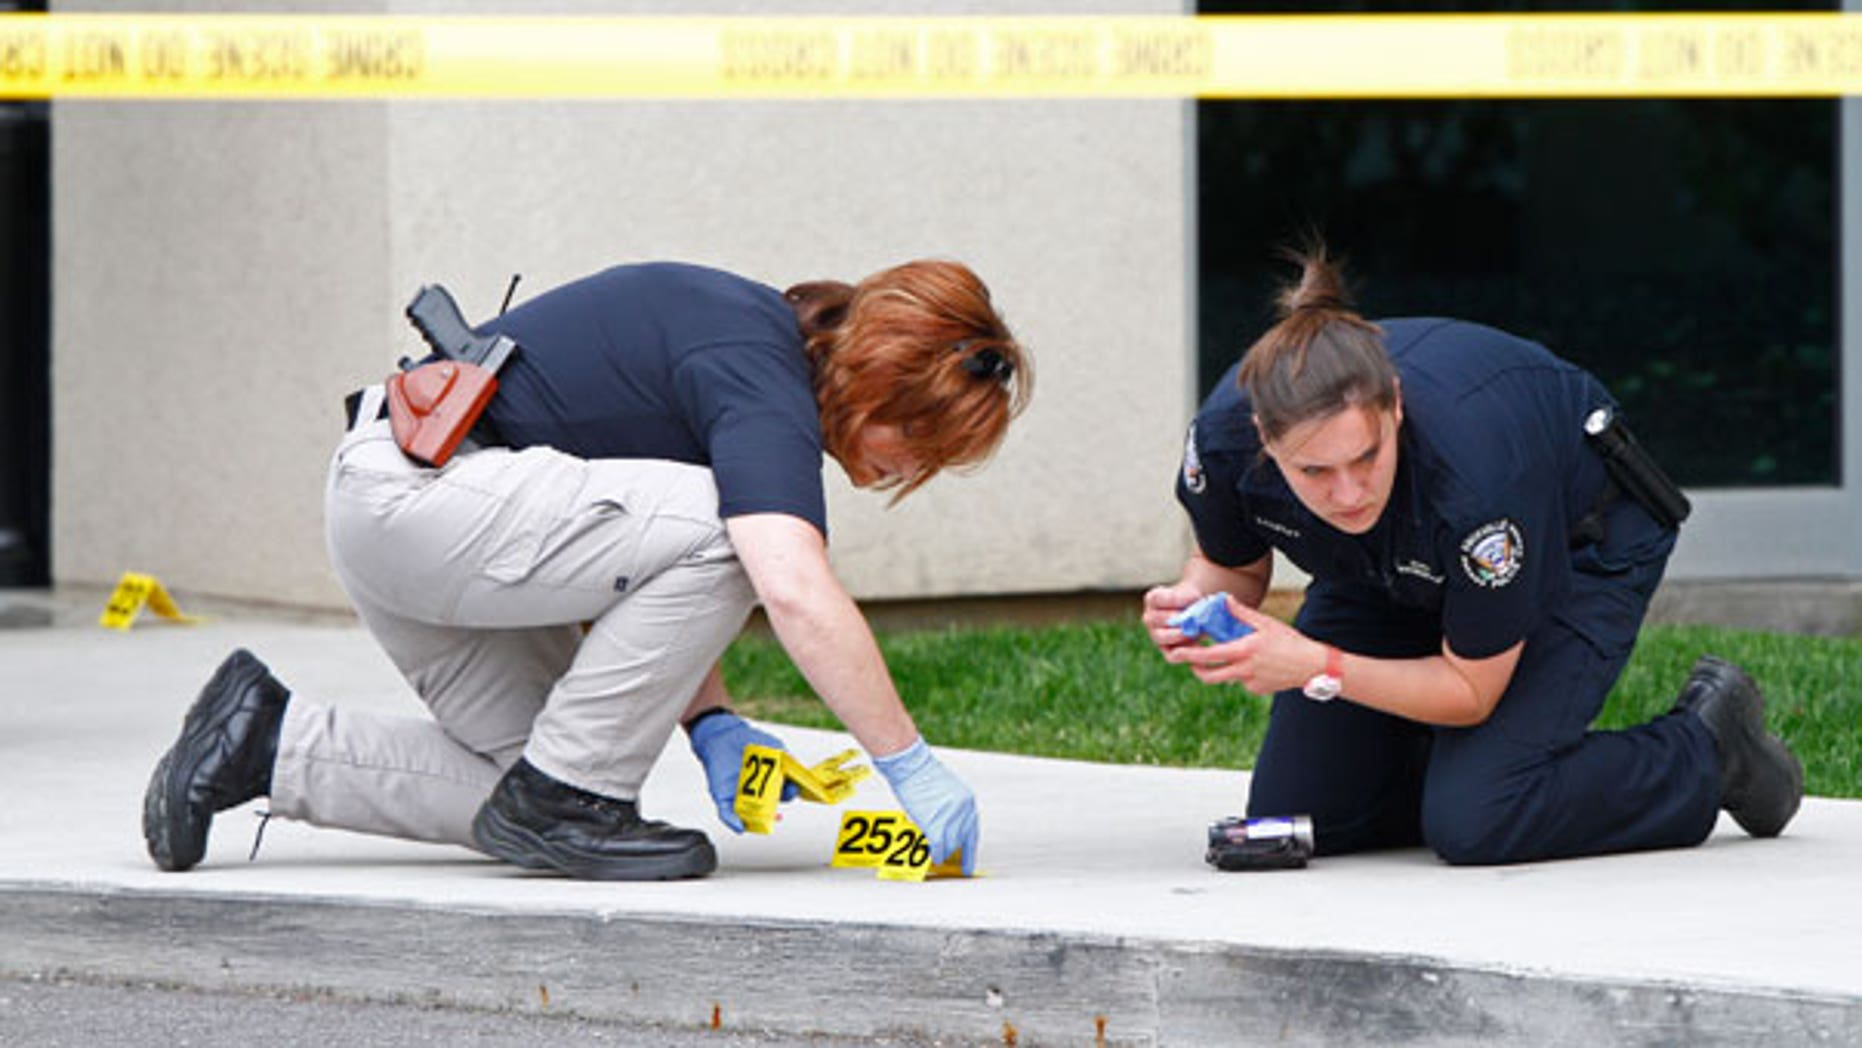 April 19: Police work the scene where a gunman opened fire outside Parkwest Medical Center in Knoxville, Tenn., killing a woman and injuring two others before committing suicide.